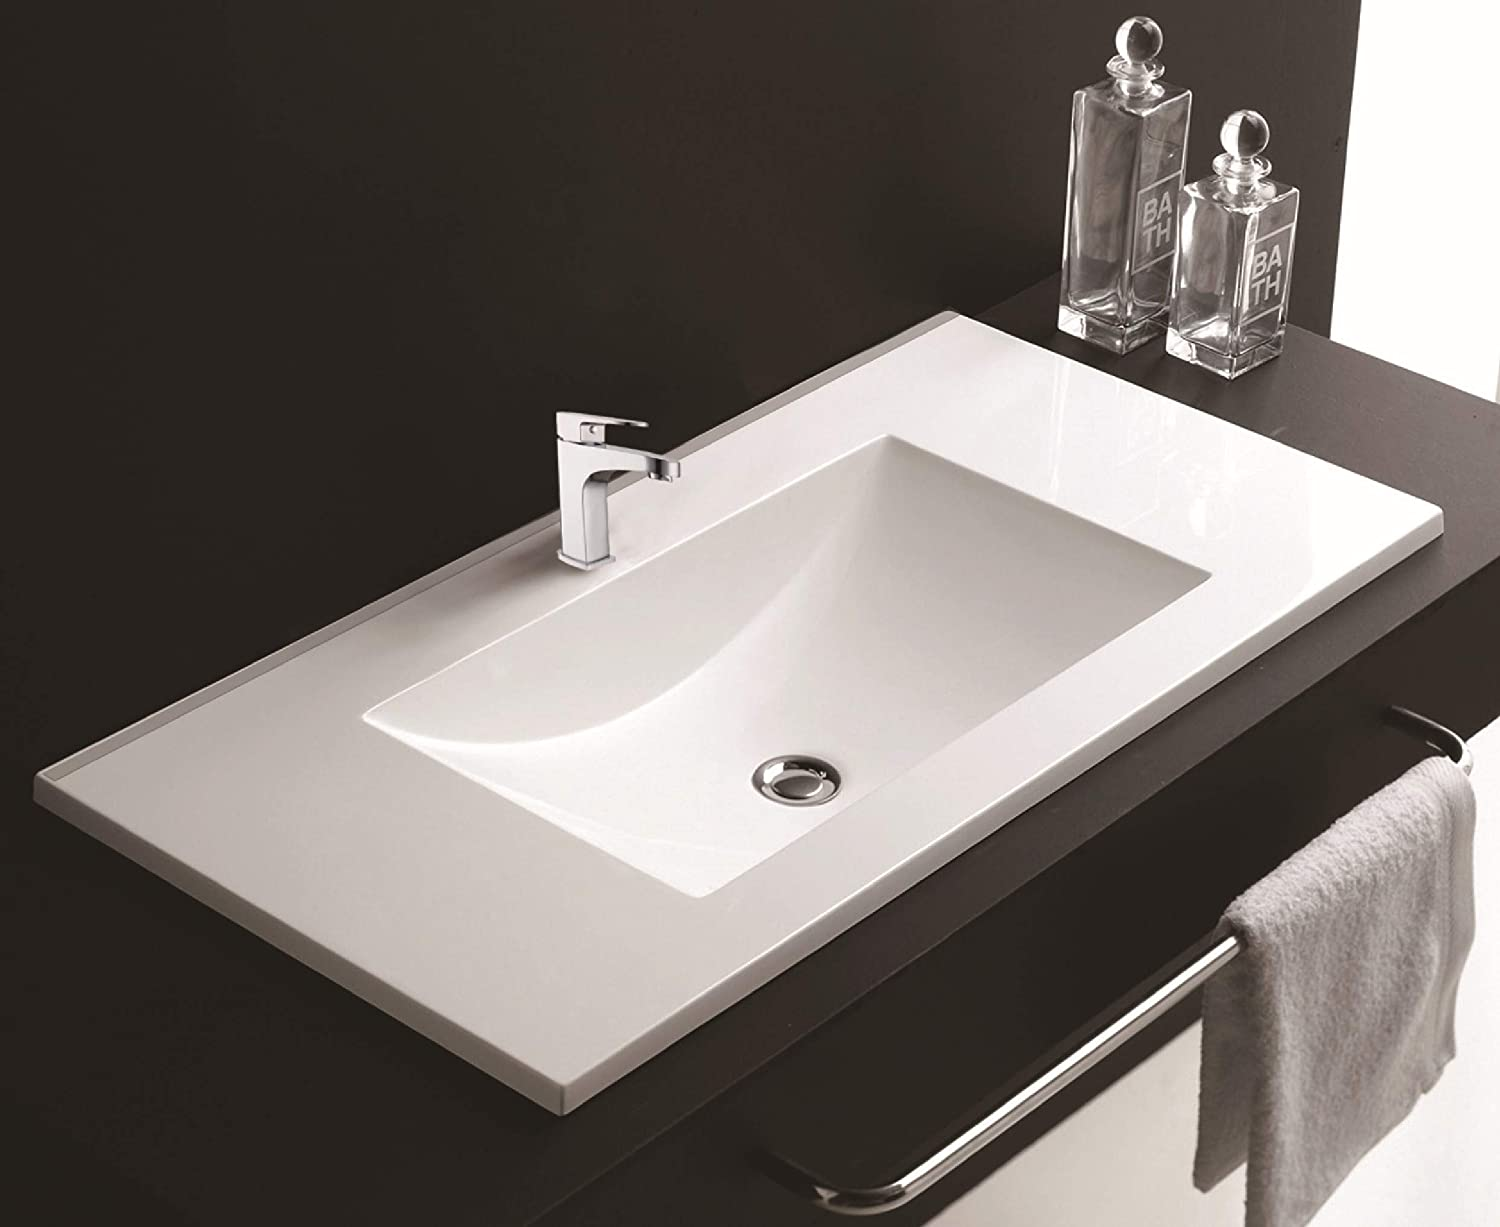 750mm Inset Basin Ceramic White Modern Square Bathroom Contemporary Sink Wash Bowl Cabinet Worktop Mounted Suitable for Fitted Furniture C CERAMICS